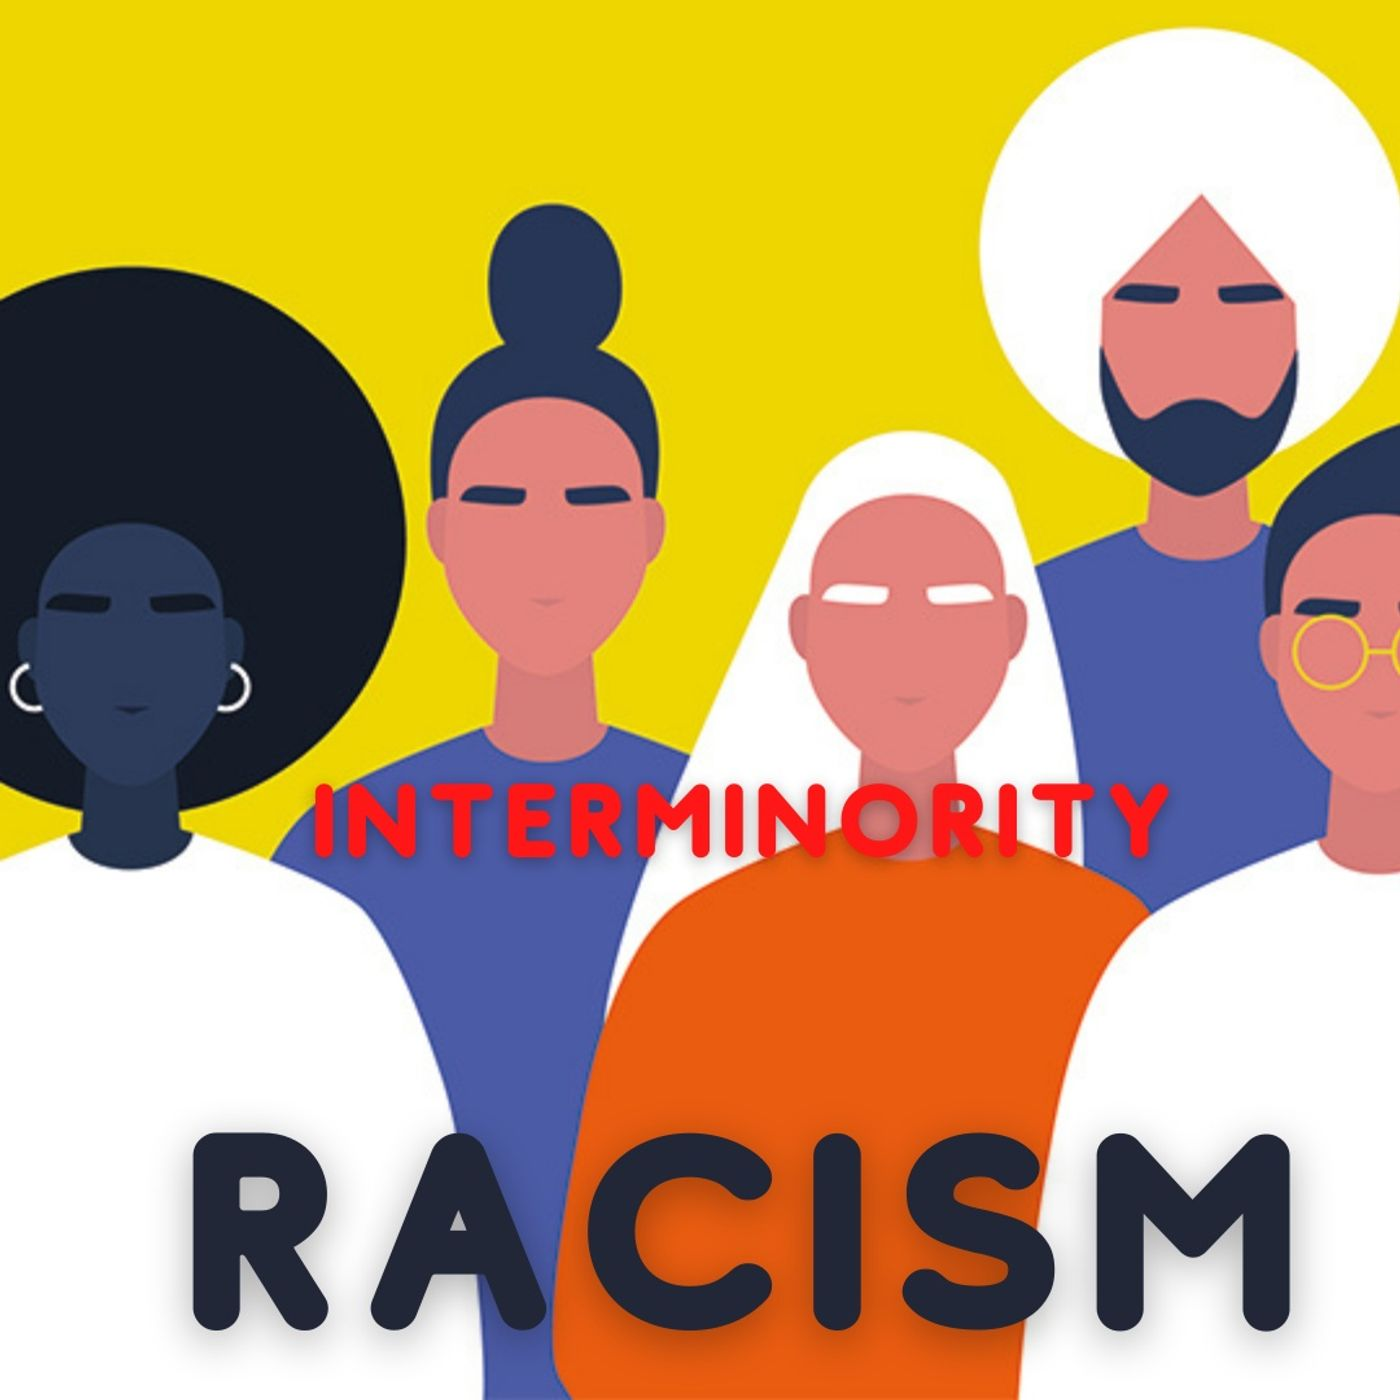 Episode 90- Interminority Racism